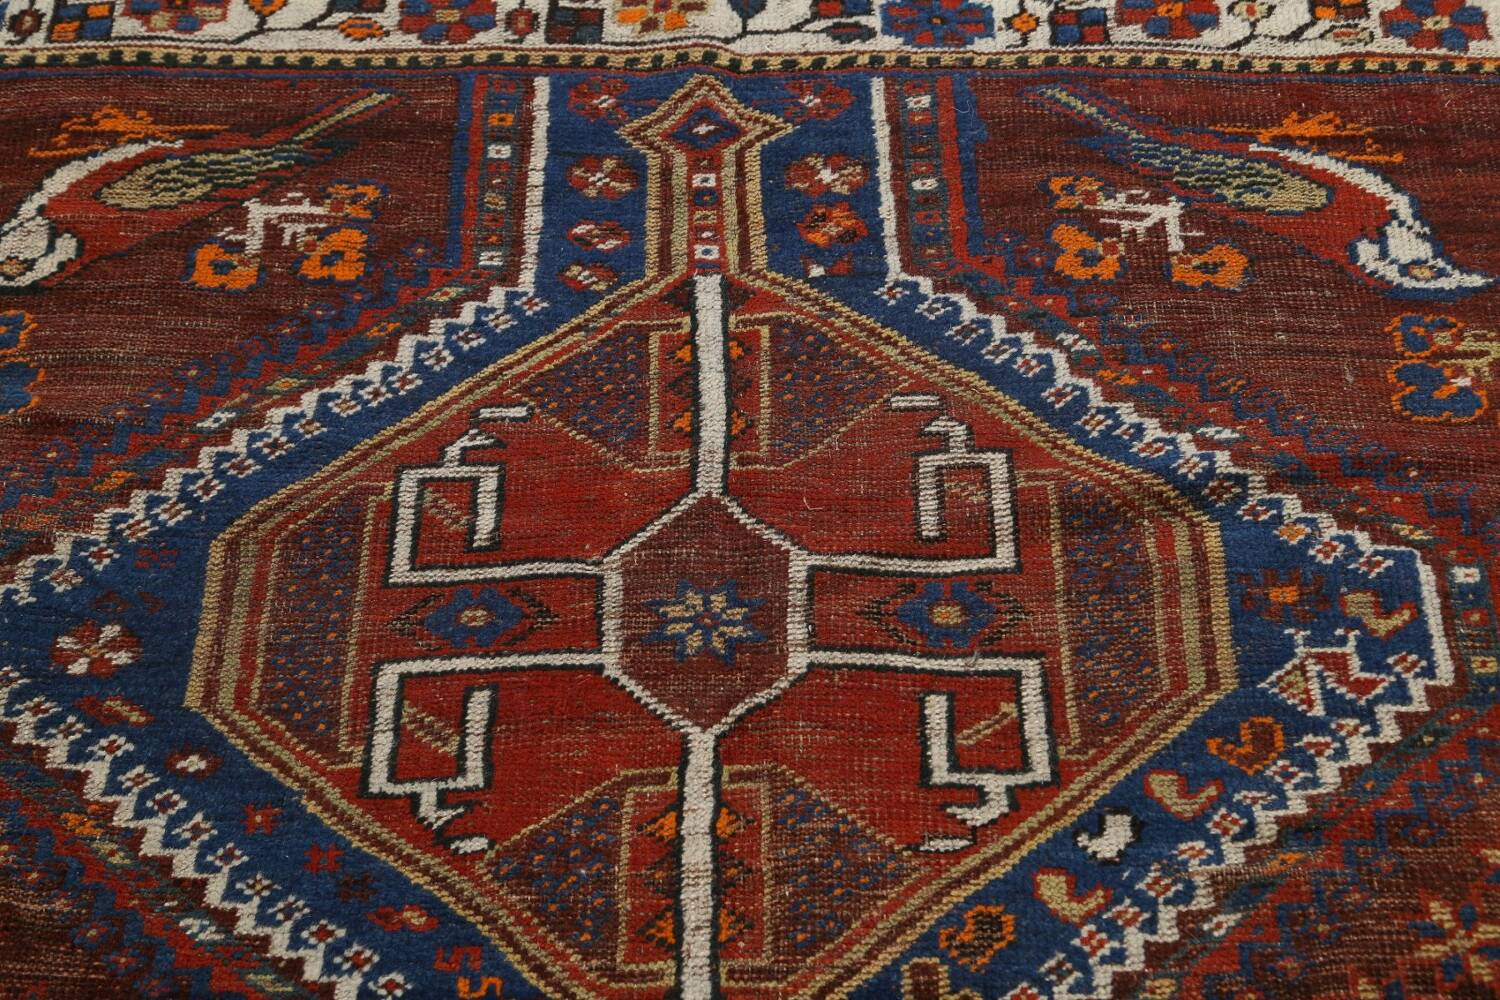 Pre-1900 Antique Ghashghaie Persian Area Rug 5x6 image 12